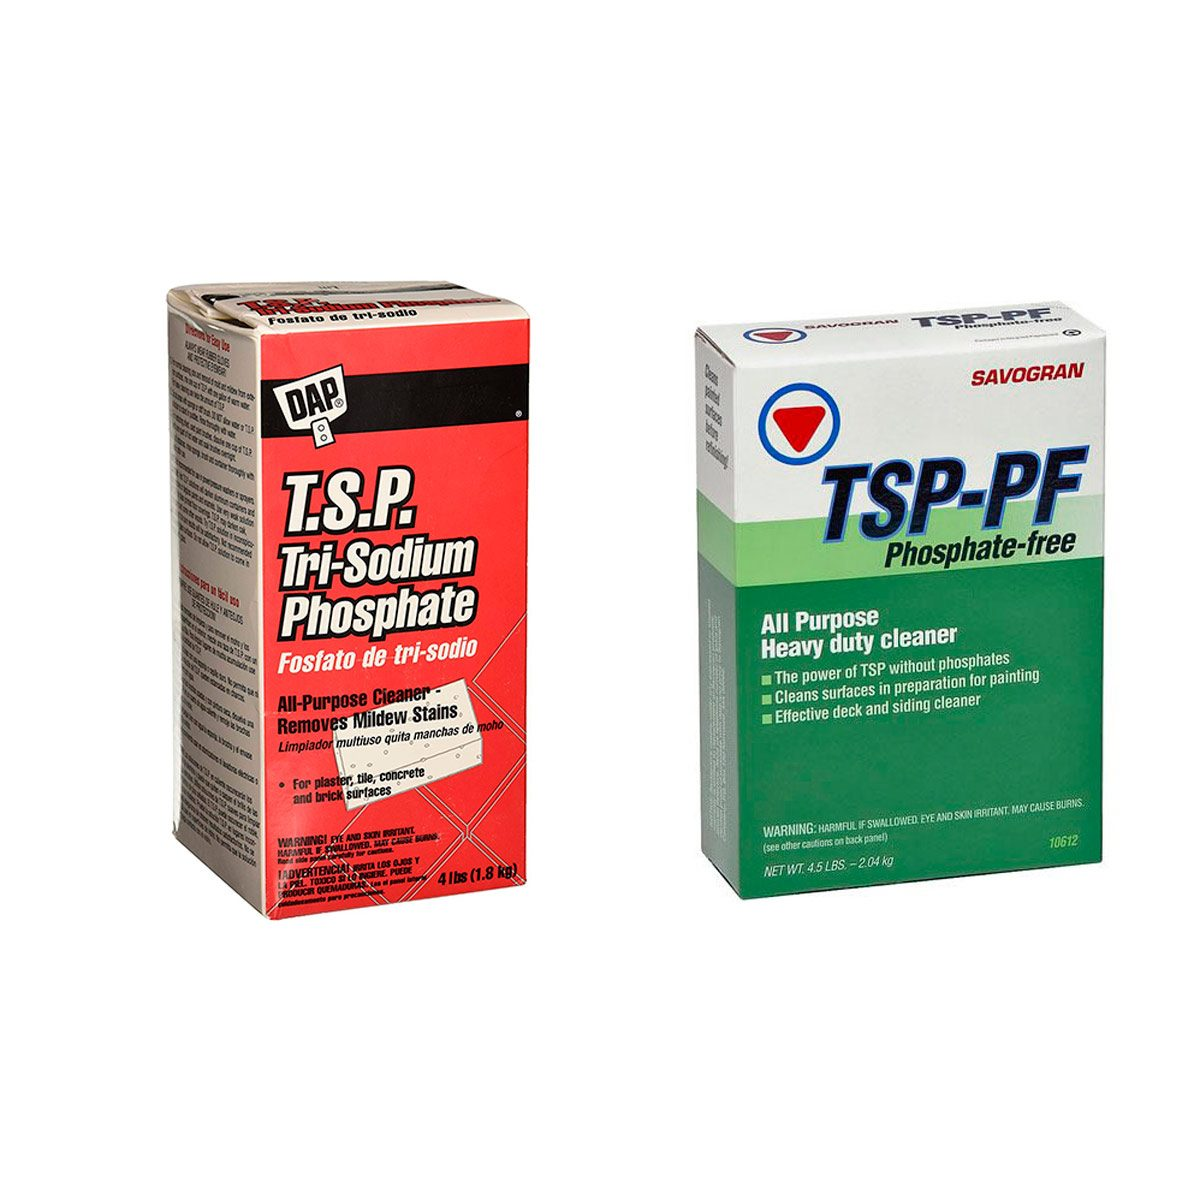 TSP and TSP substitute